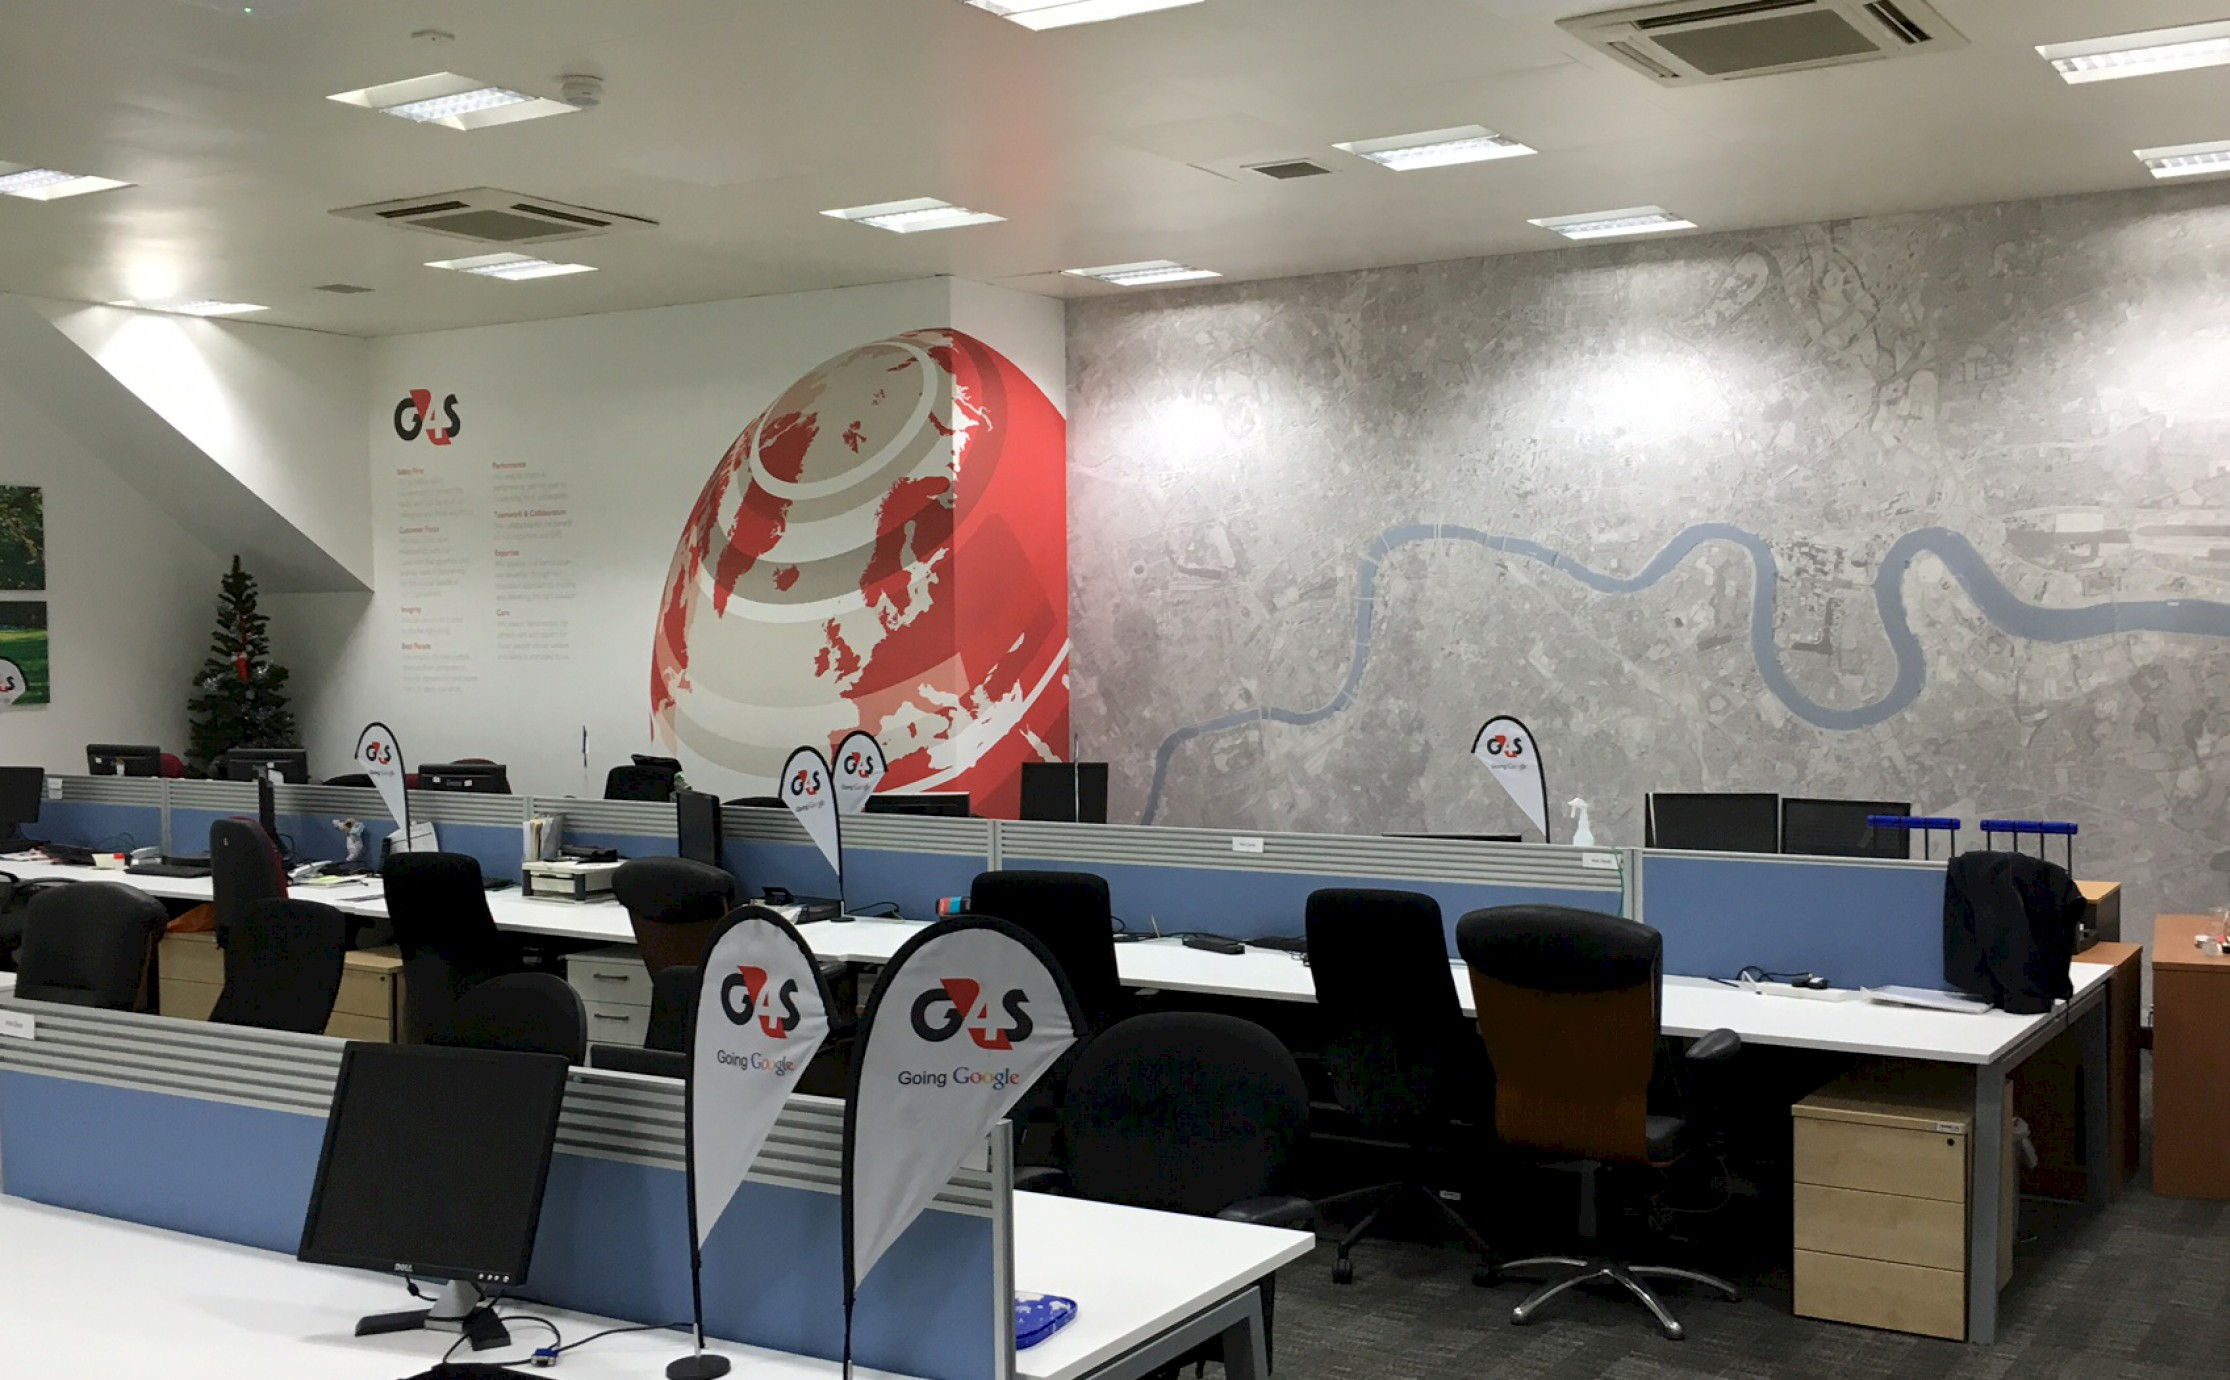 G4S wall covering photograph